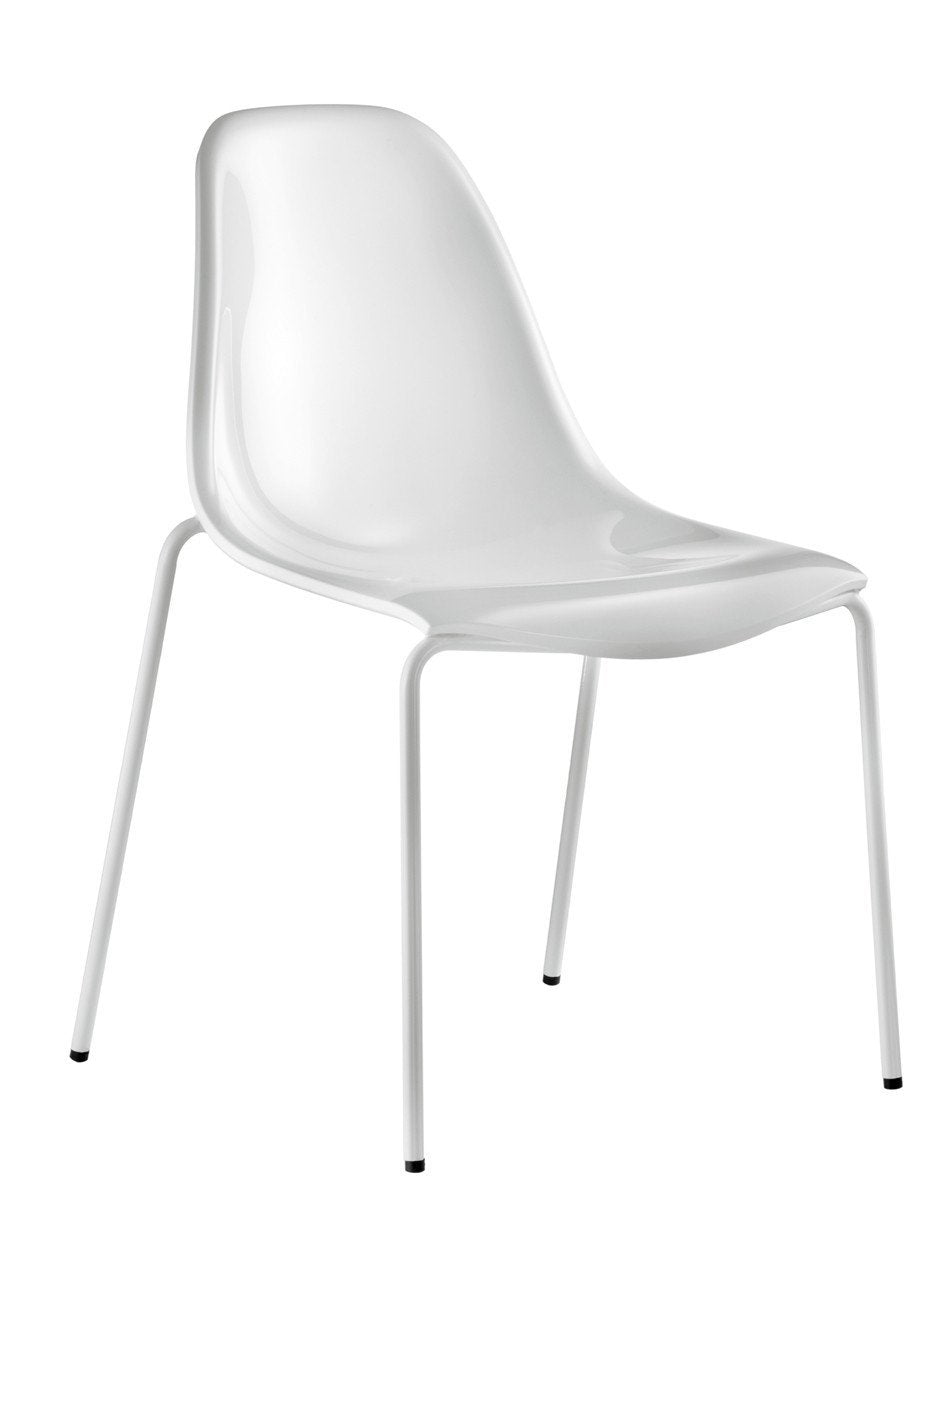 Day Dream 405 Side Chair-Pedrali-Contract Furniture Store